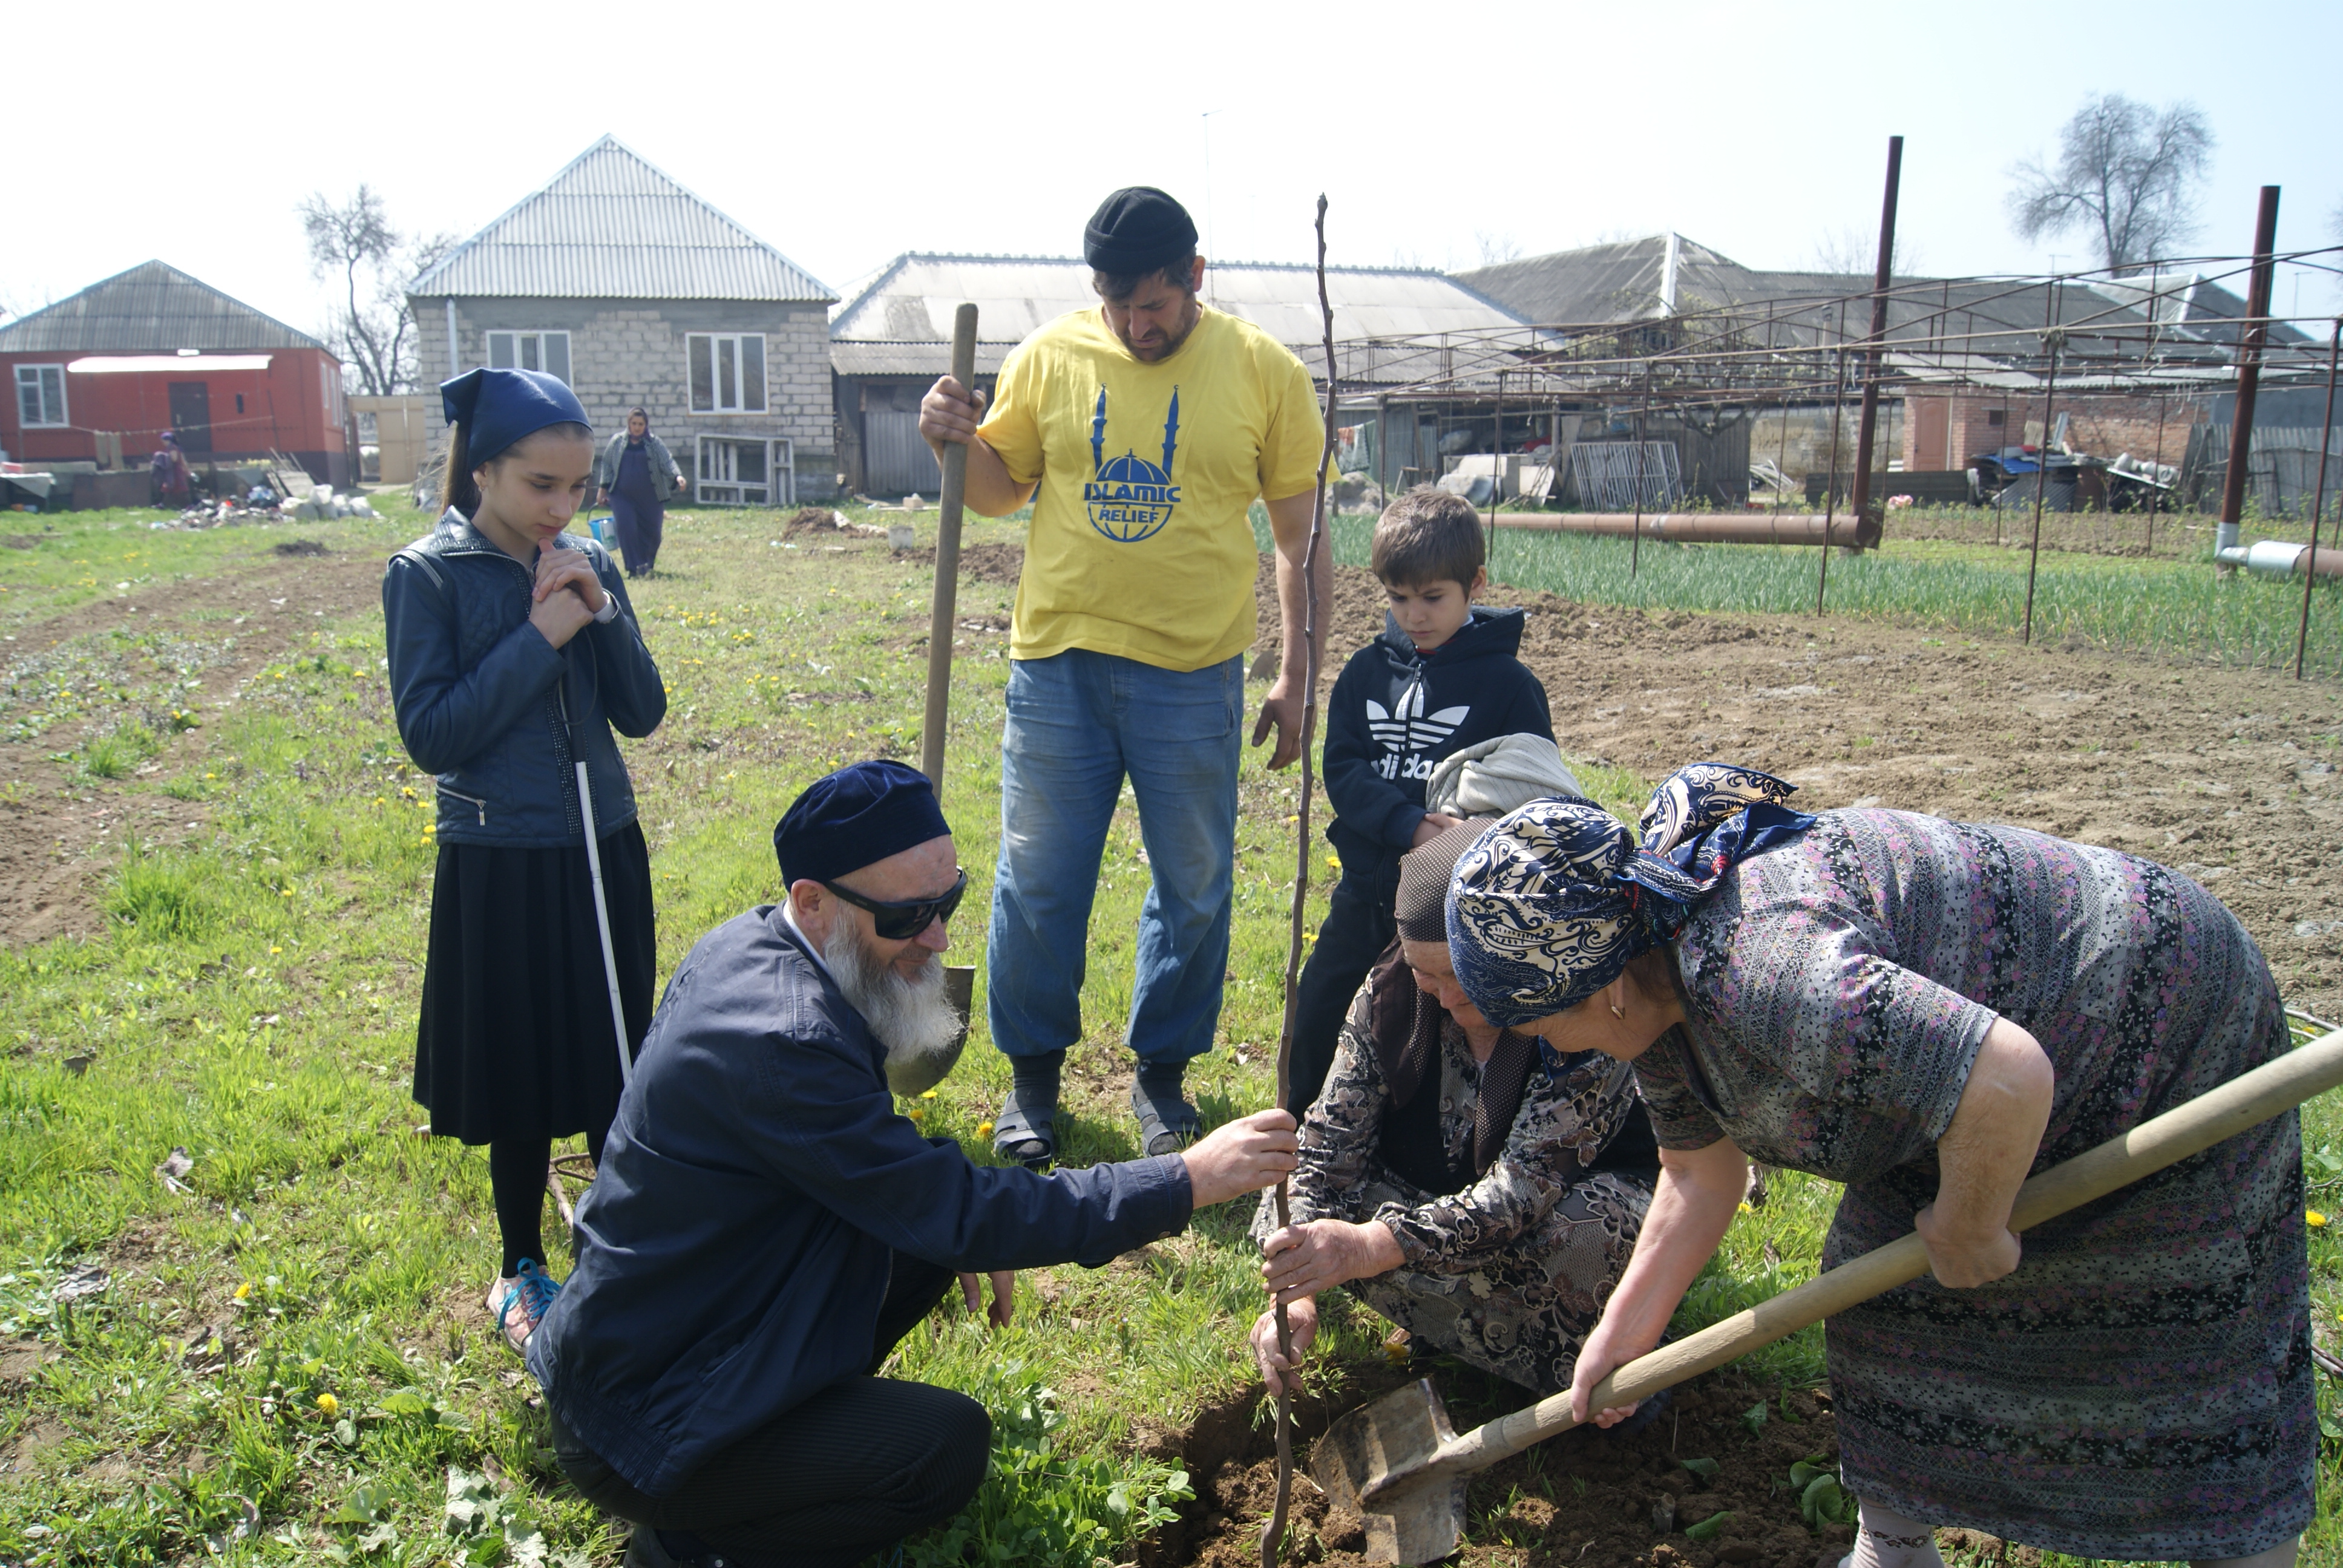 In the framework of the projecvt IRR distributed 1000 trees for the Blind,provided necessary gardening equipment, chemicals and professional consultations for cultivating various fruit trees. Daud Yusupkhadzhiev lives in Shali village, he is planting the tree under the supervision of membersfrom thegrass-root organization ofvisually handicapped, which is cooperating with IRR in implementing of this project.